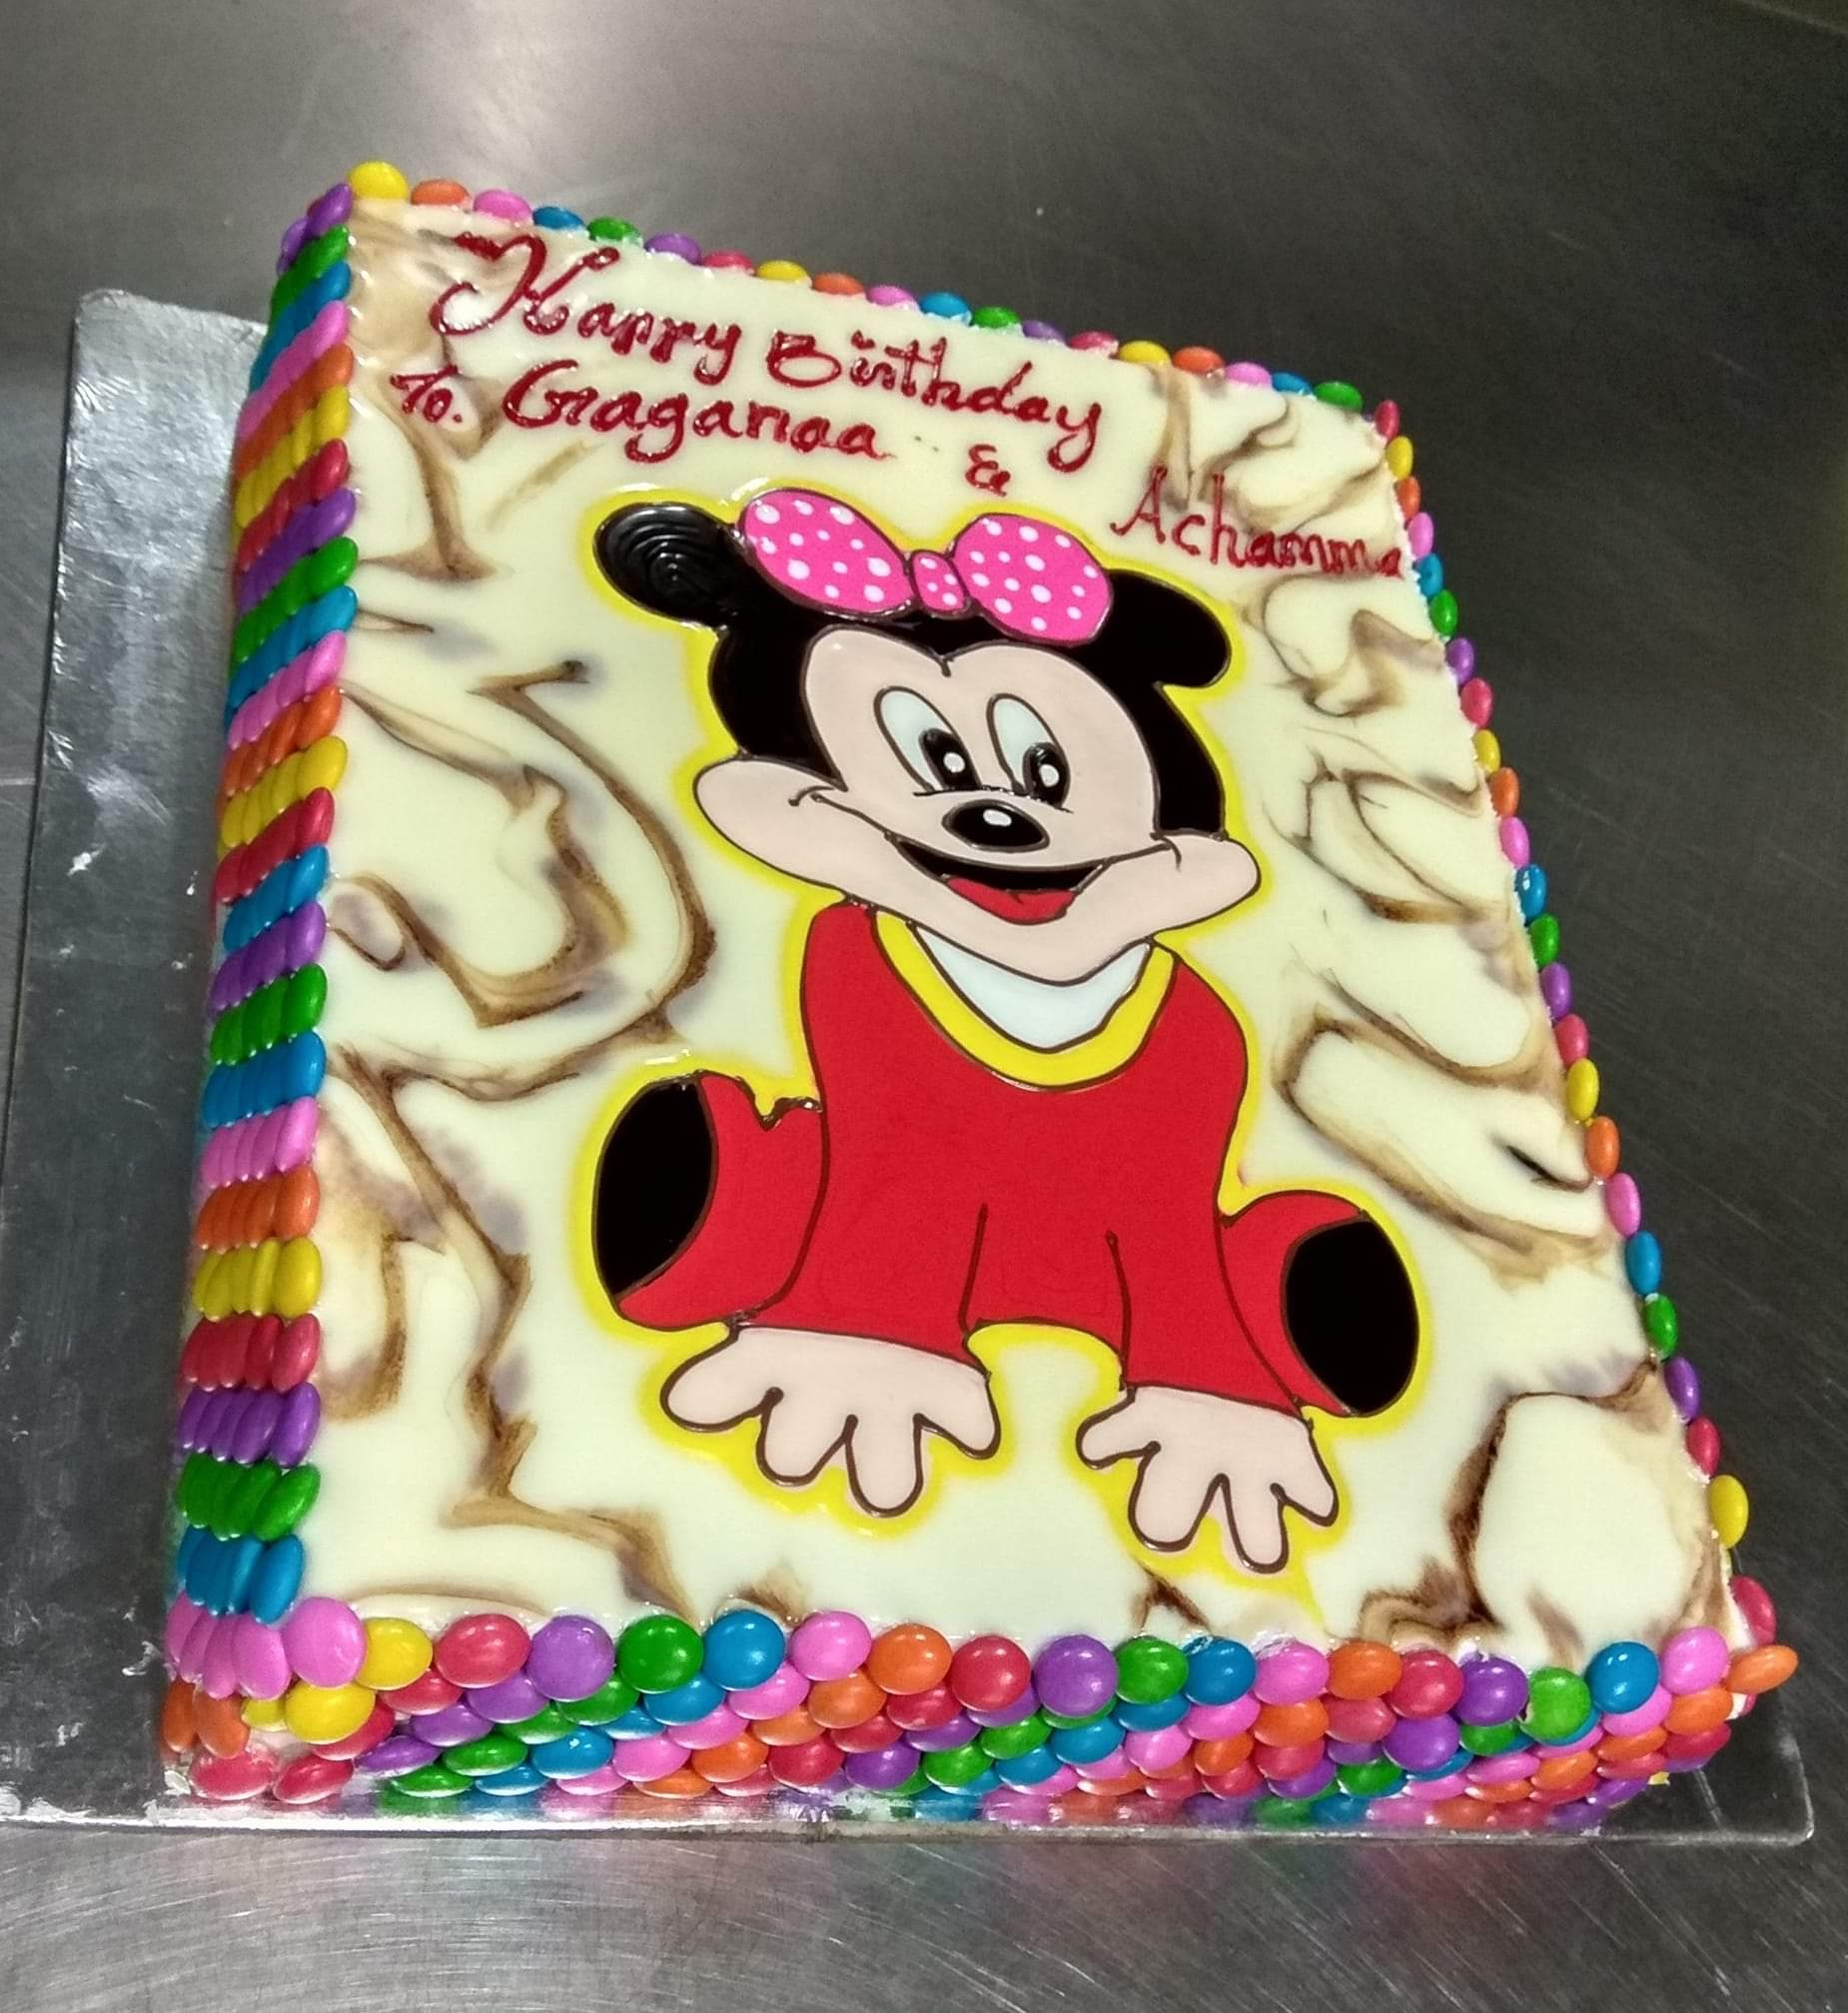 Mumbaicake A Perfect Online Cake Home Delivery Service Provider In Mumbai Check It Out Some Of Their Amazing Cakes Which Is Also Available For Free